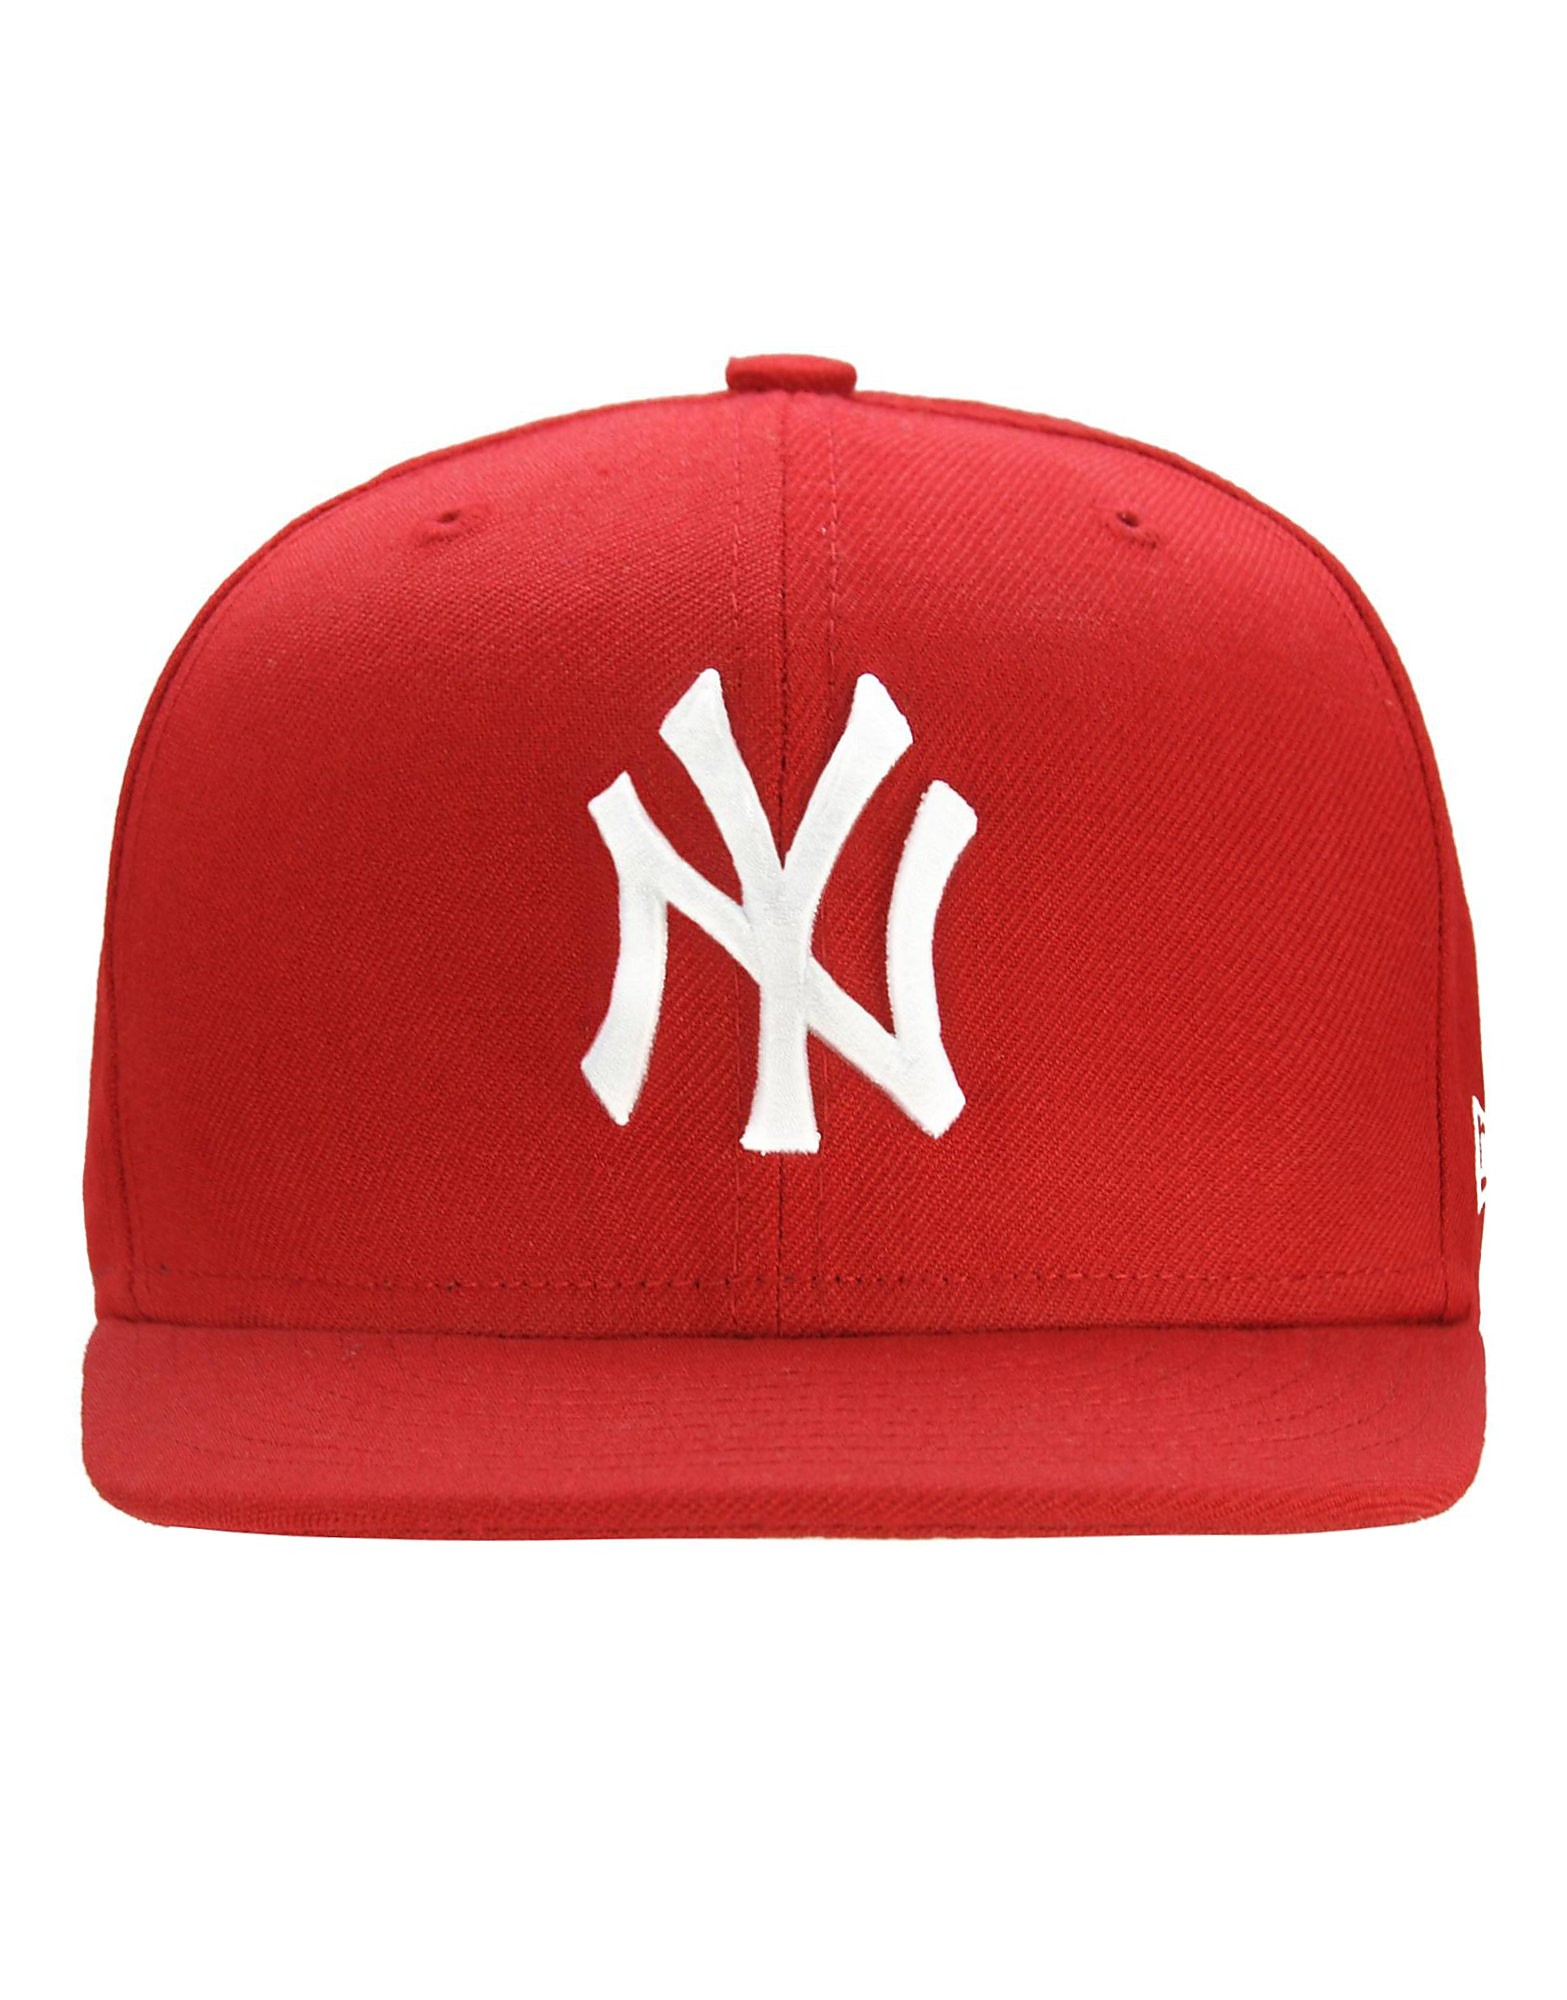 New Era MLB New York Yankees 59FIFTY Fitted Cap - Red/White - Mens, Red/White